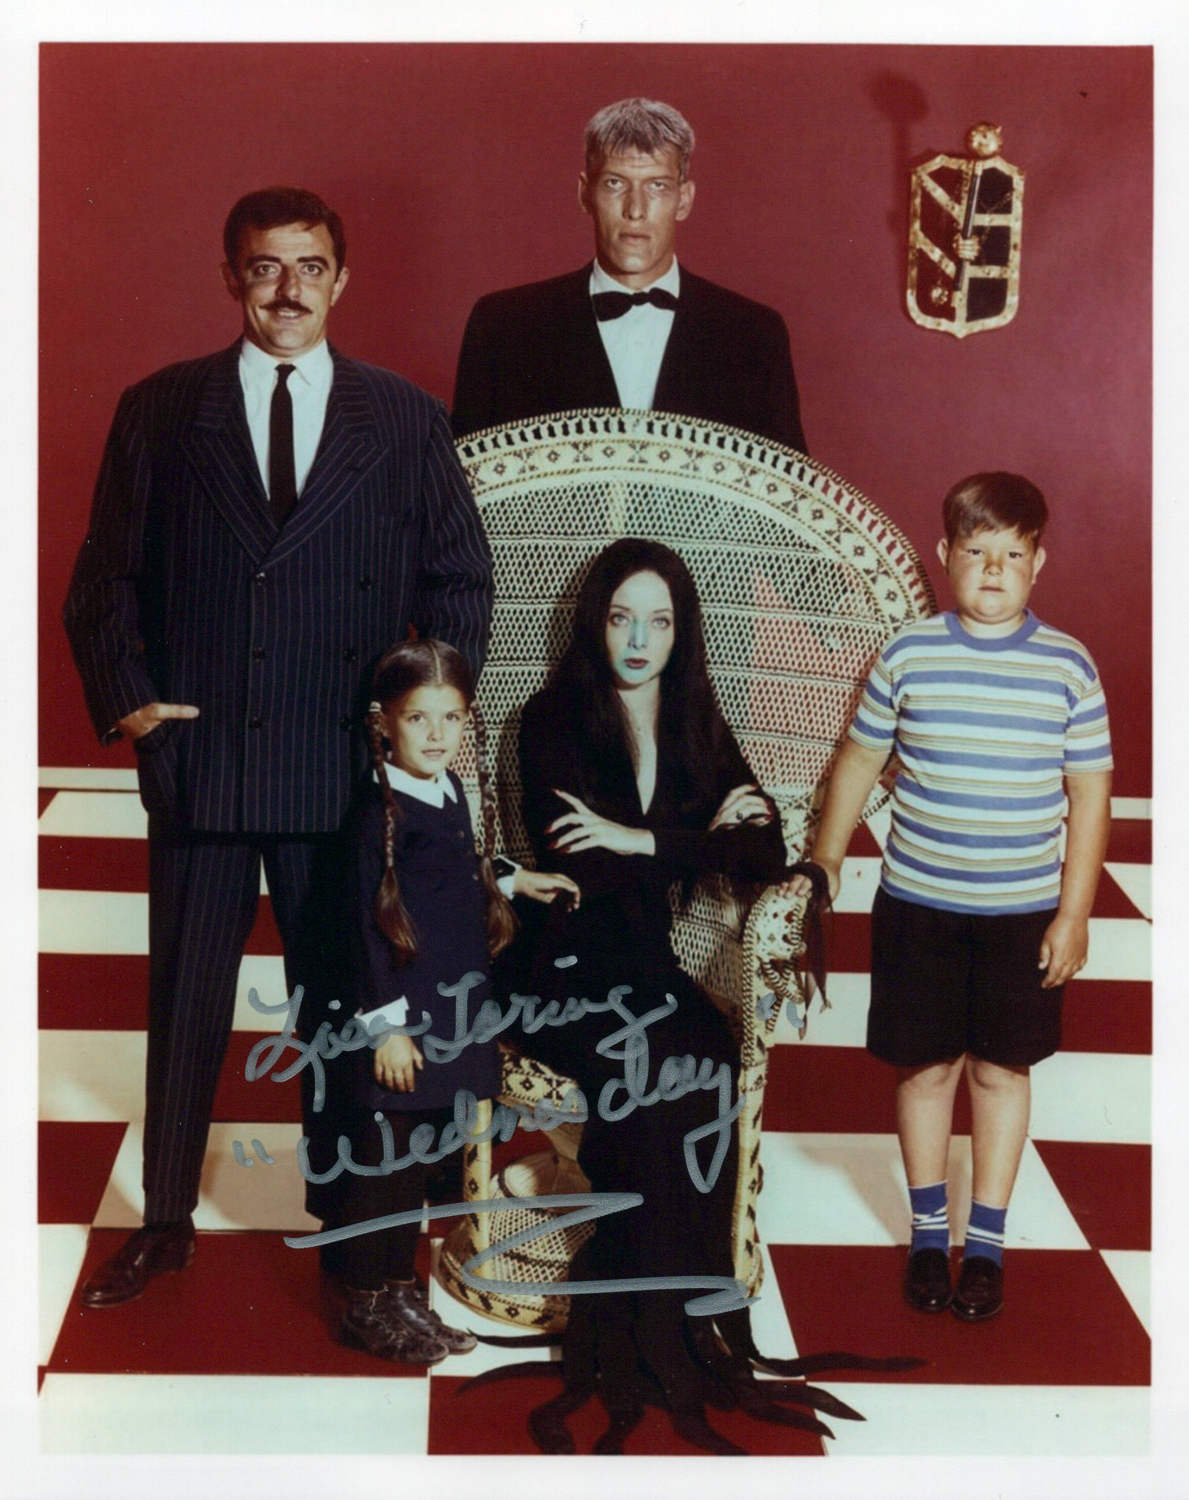 Lisa Loring Original Autogramm auf Foto 20x25cm - The Addams Family